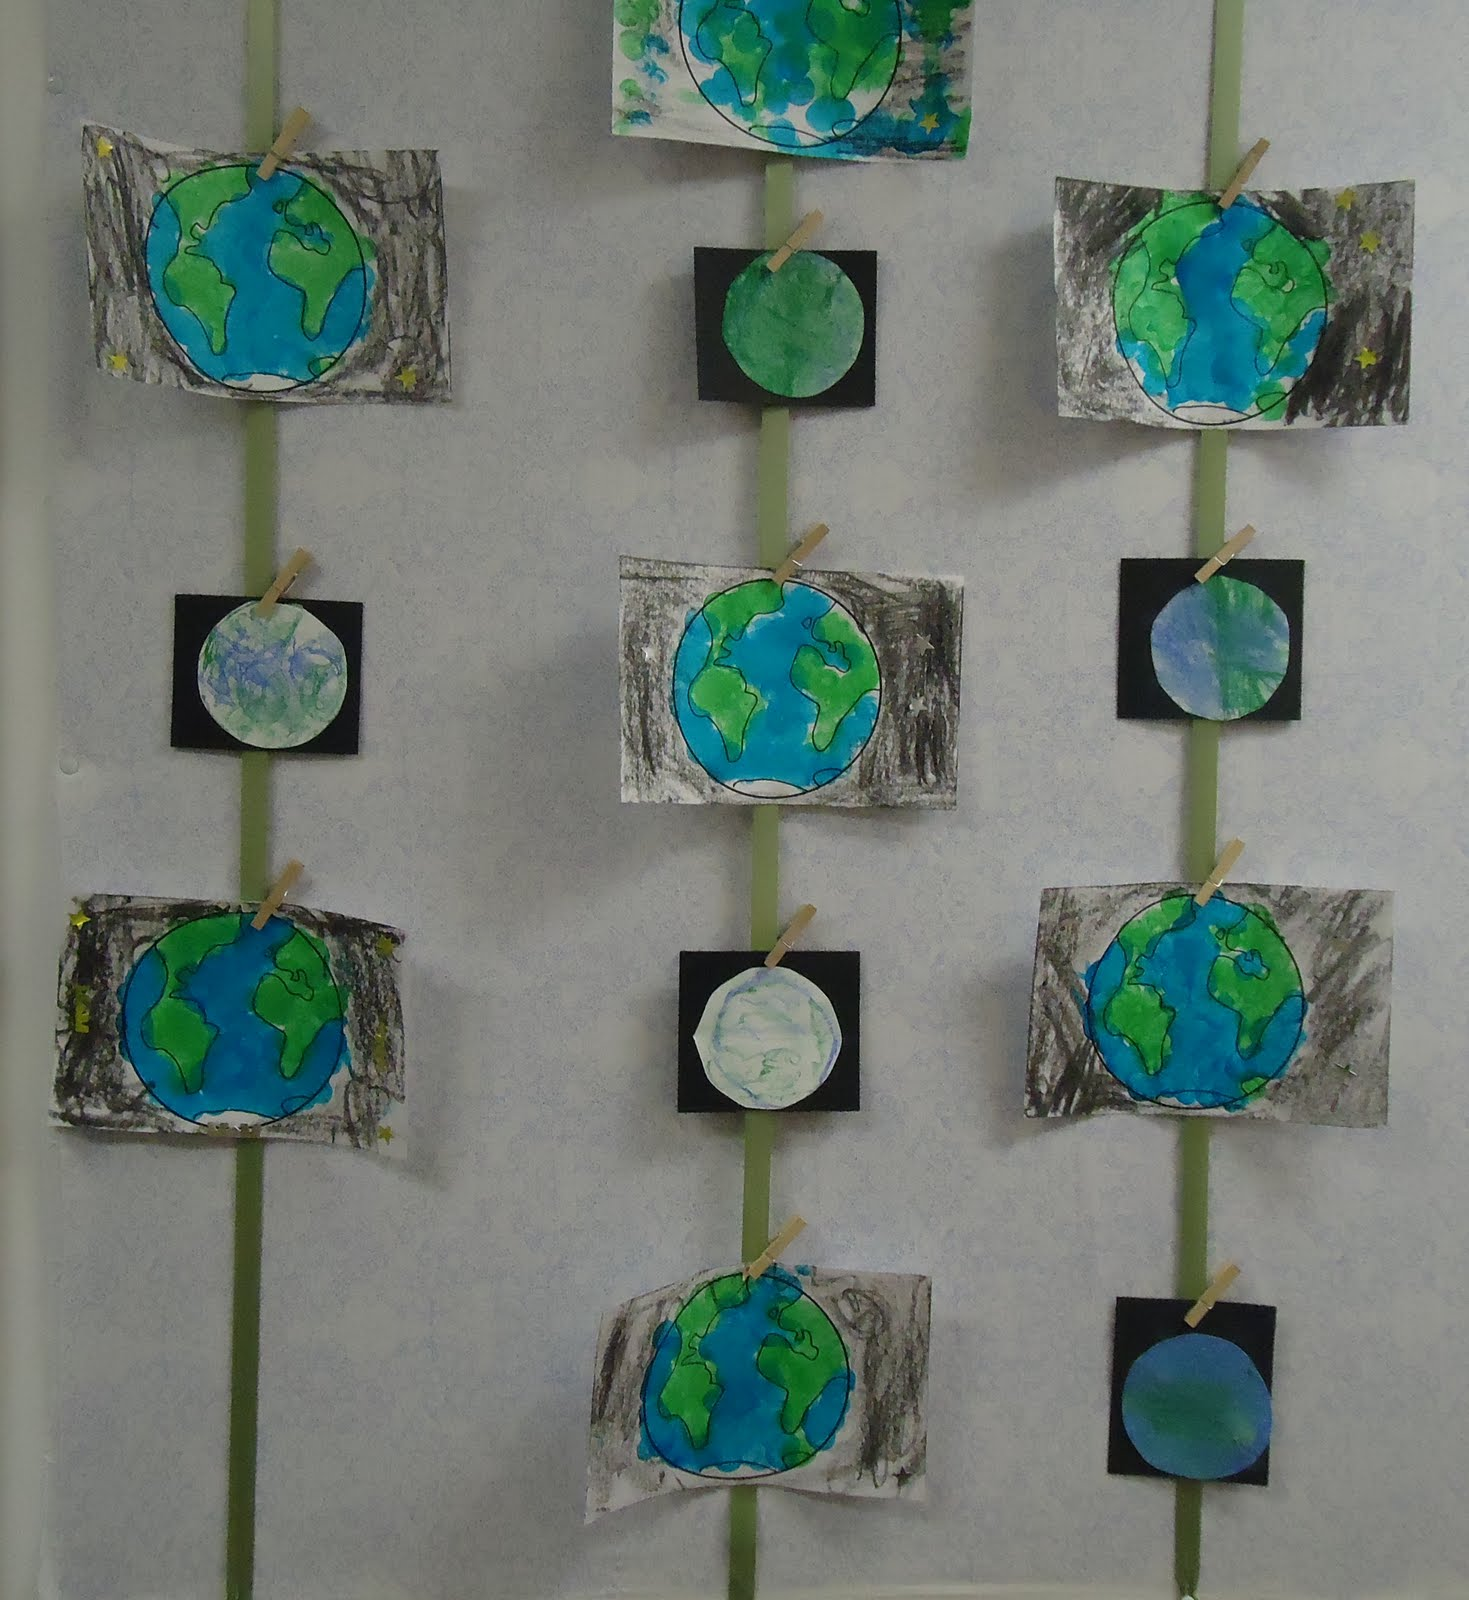 To The Lesson More Earth Day Art